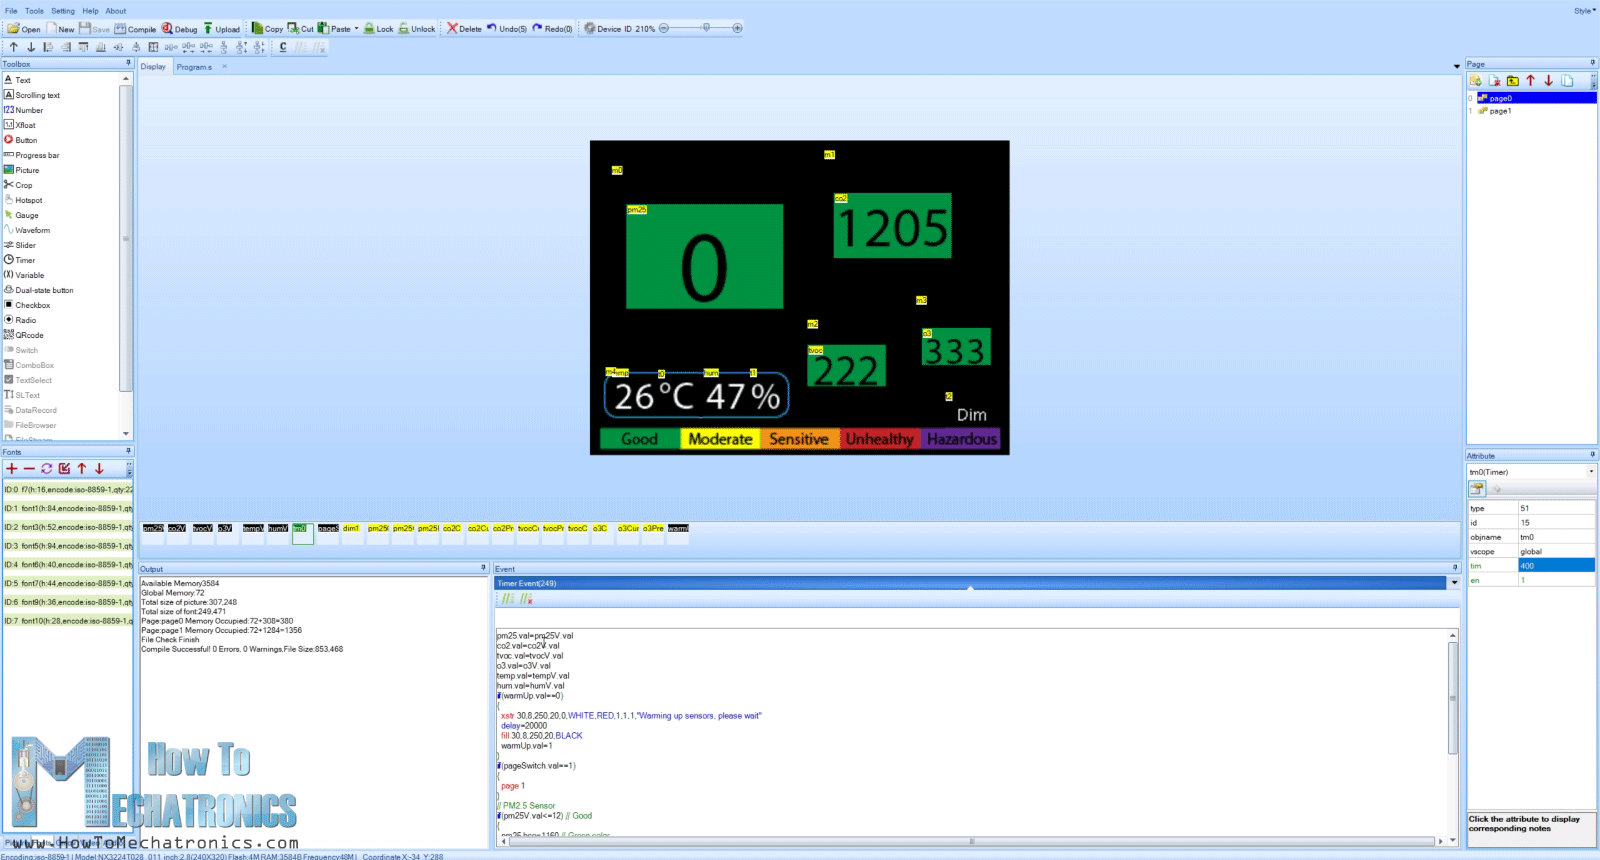 Making a GUI for the Air Quality Monitor using the Nextion editor